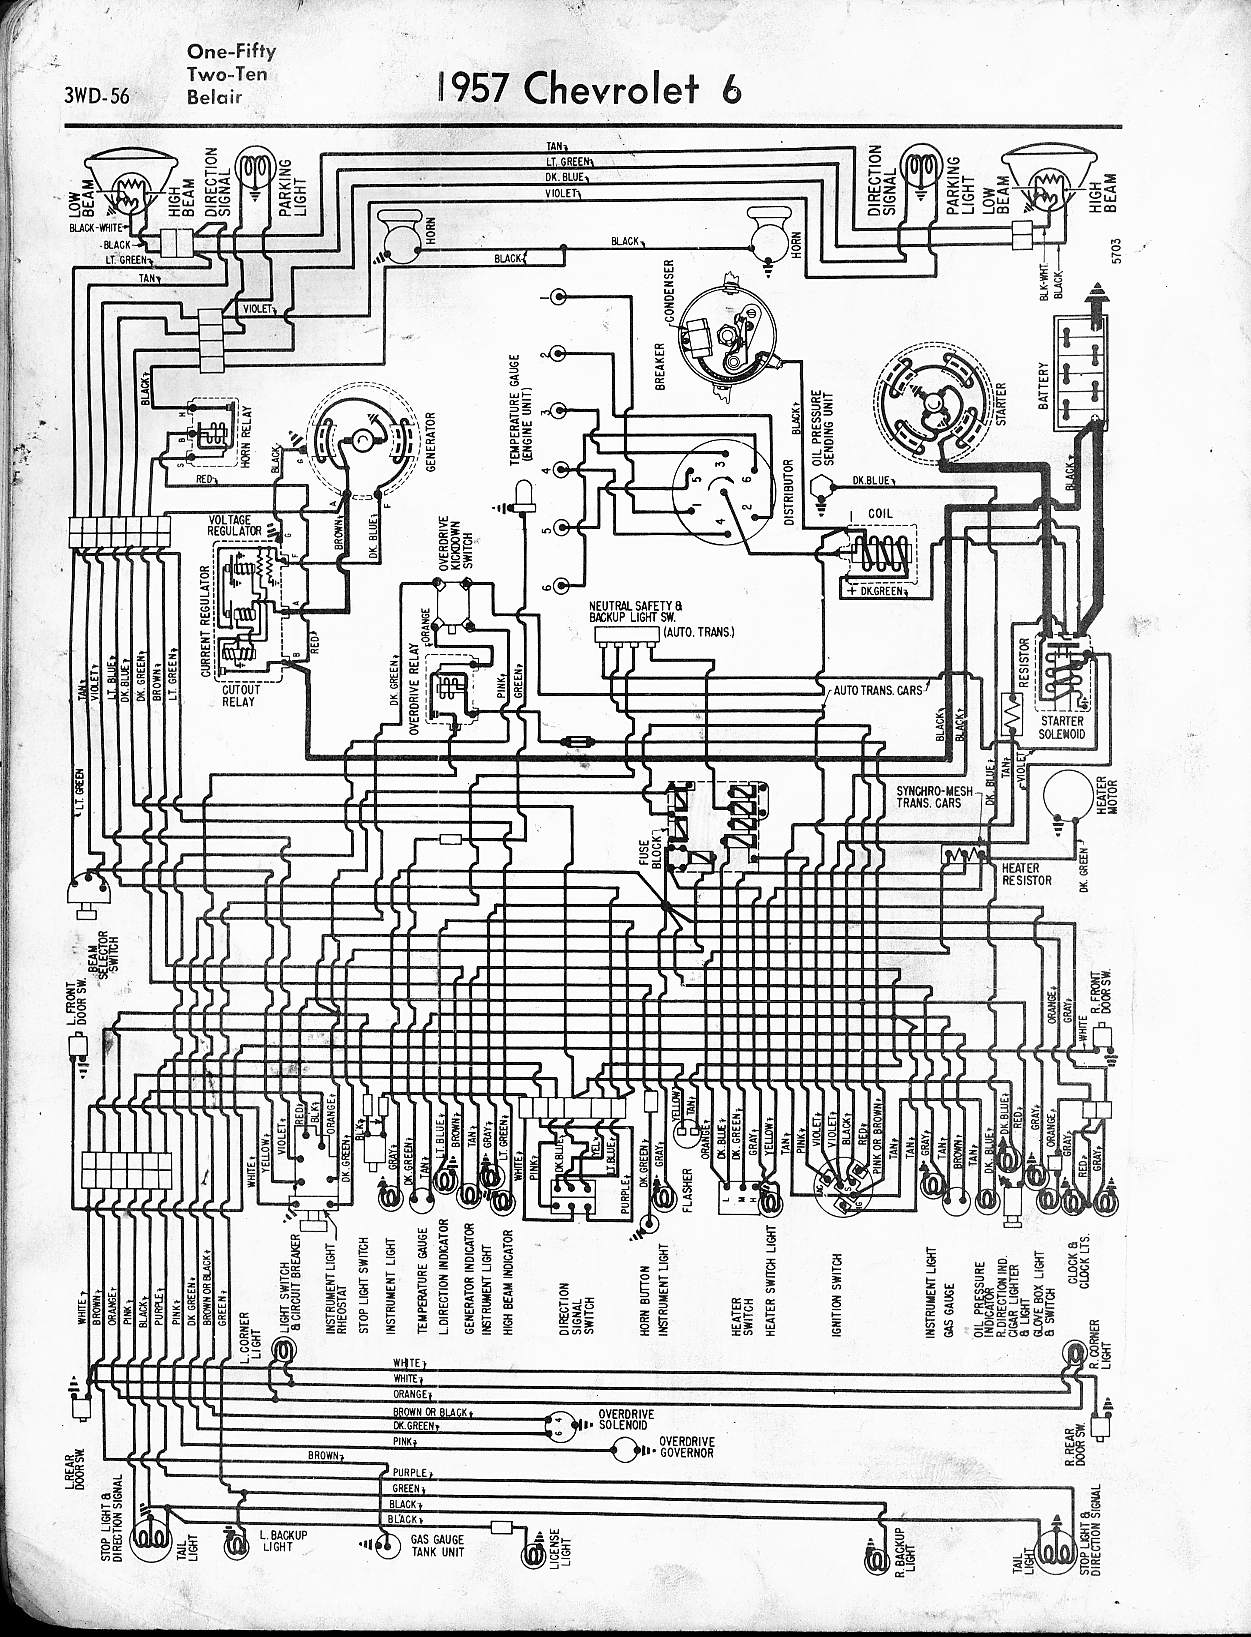 MWireChev57_3WD 056 57 65 chevy wiring diagrams 1957 chevy bel air wiring harness at readyjetset.co